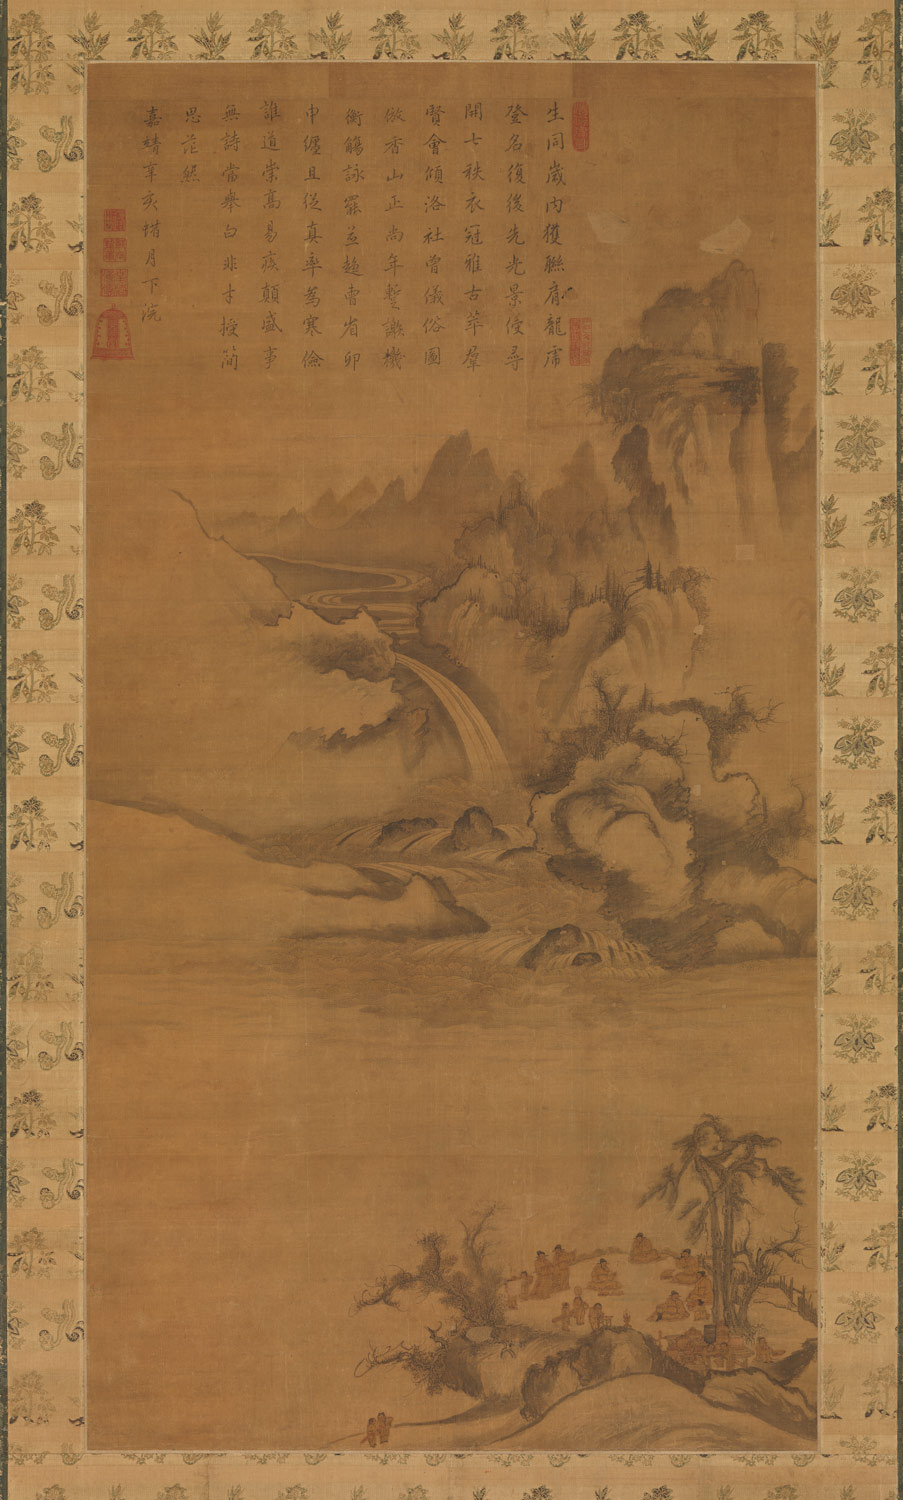 mountain and water korean landscape painting 1400 1800 essay gathering of government officials